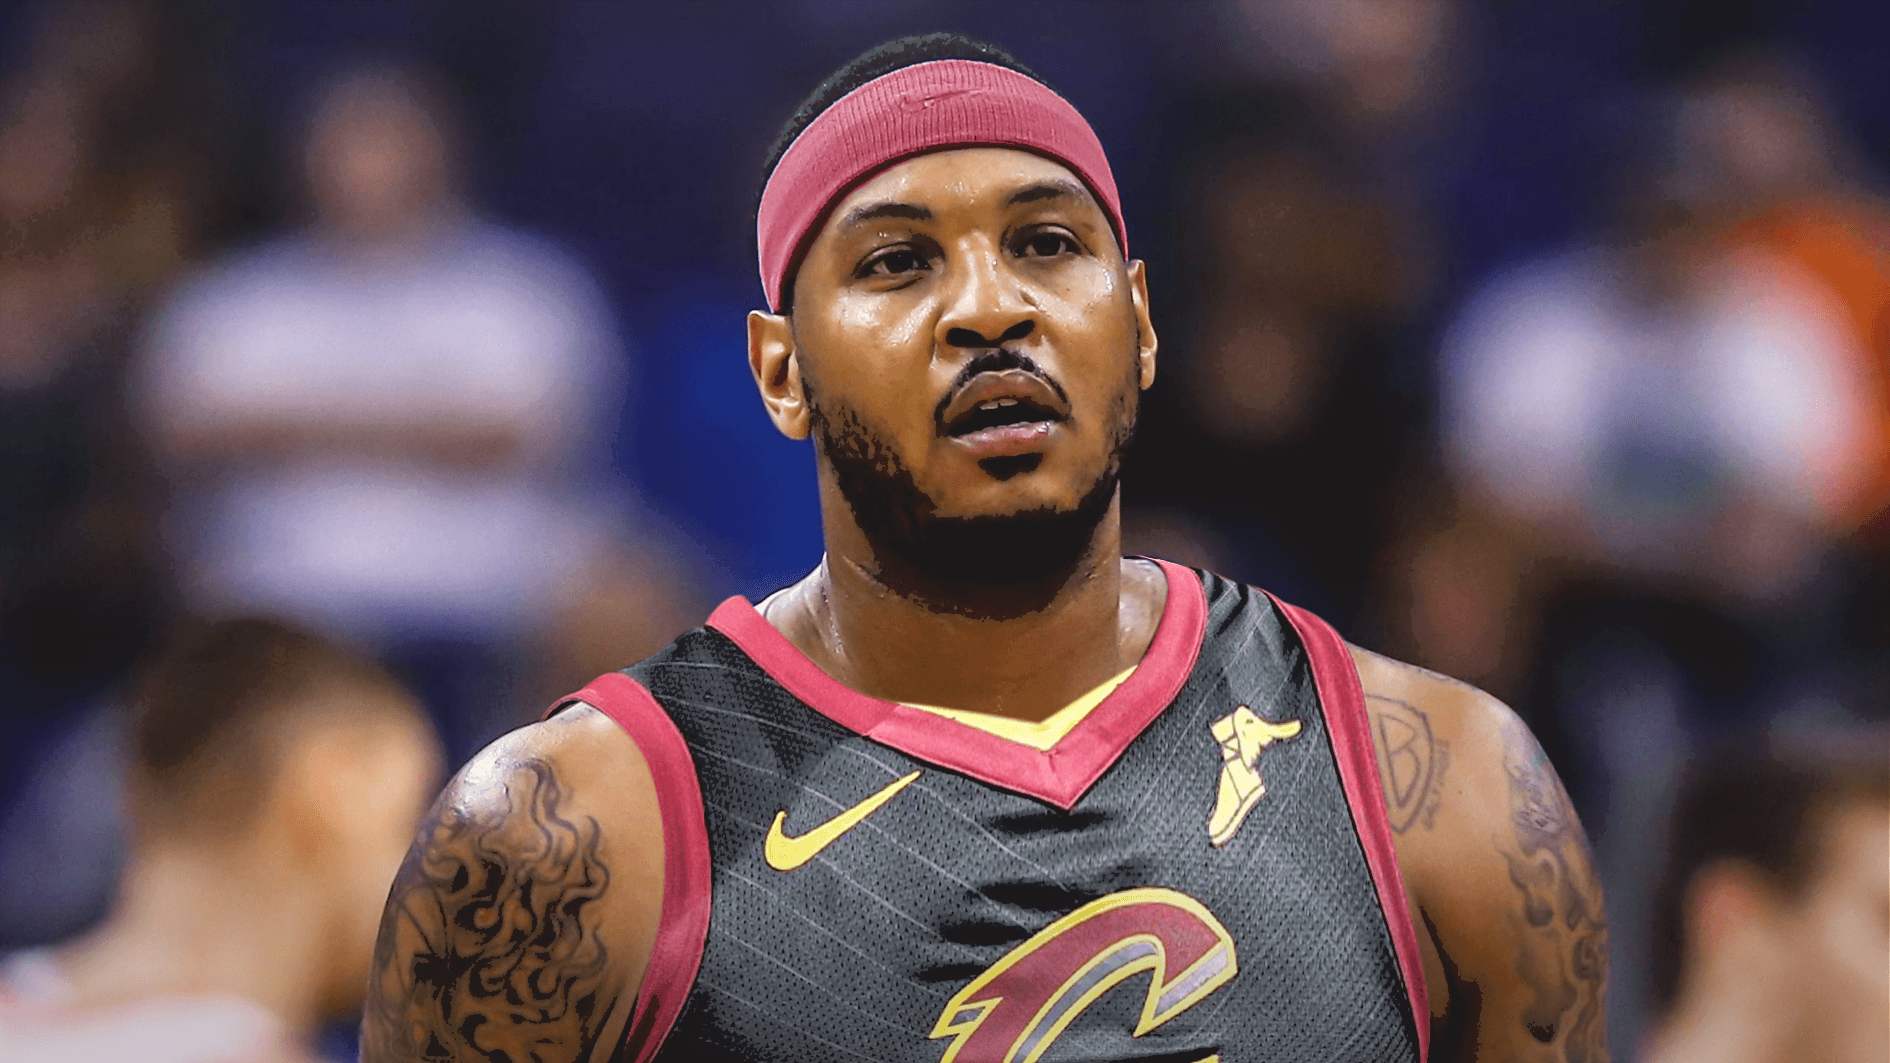 https://cavsnation.com/wp-content/uploads/2018/07/Carmelo-Anthony-Cavs.png